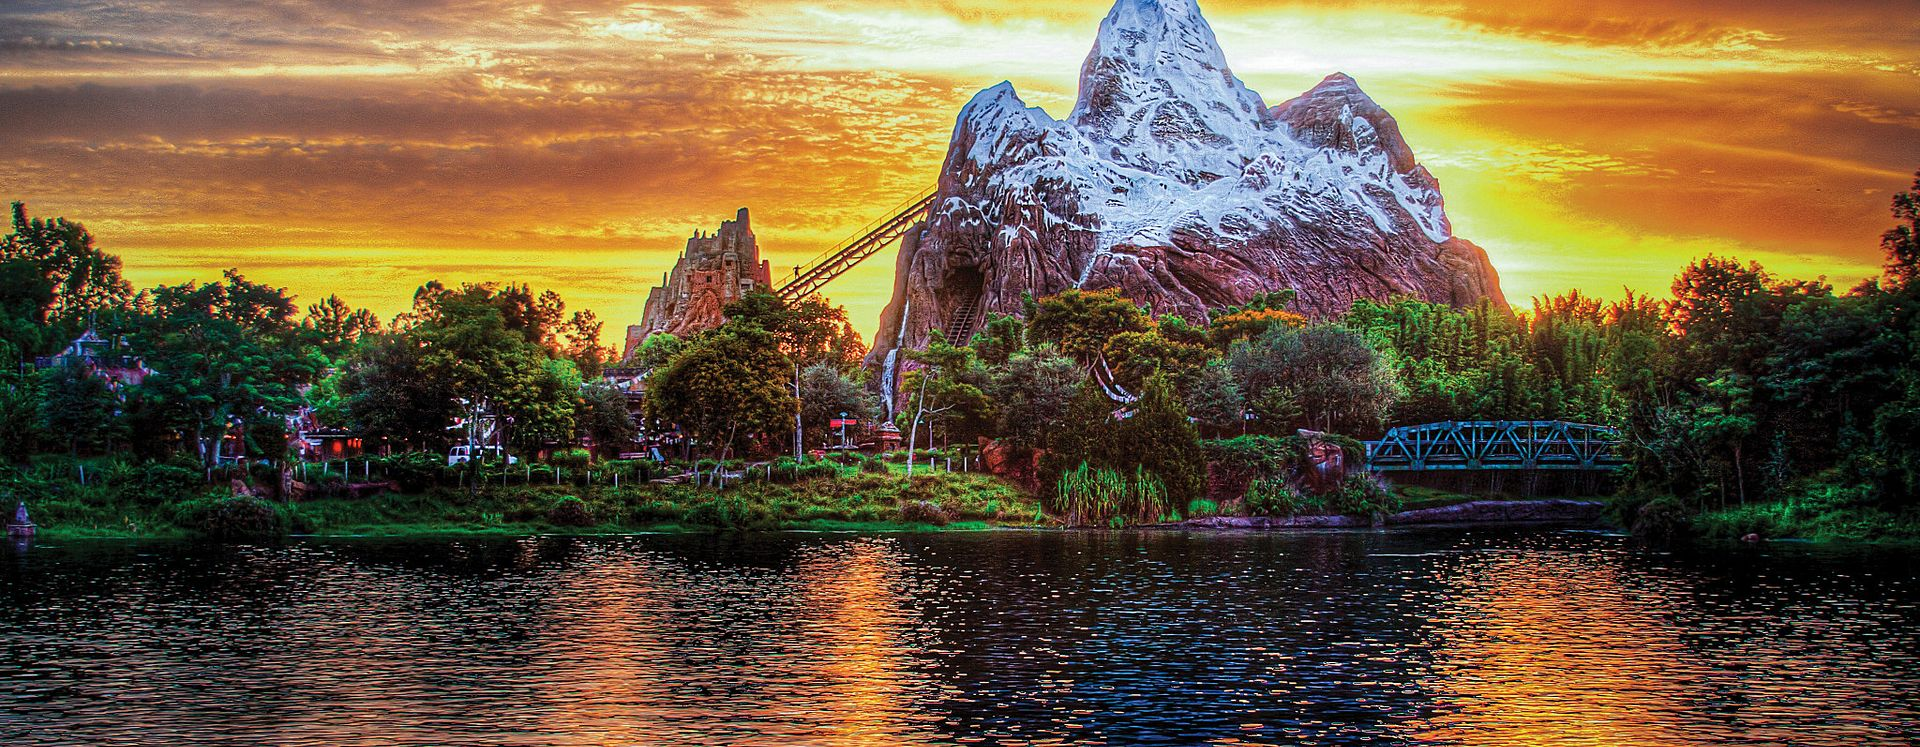 Vista al lago de Expedition Everest en Animal Kingdom en Walt Disney World Resort en Orlando, Florida